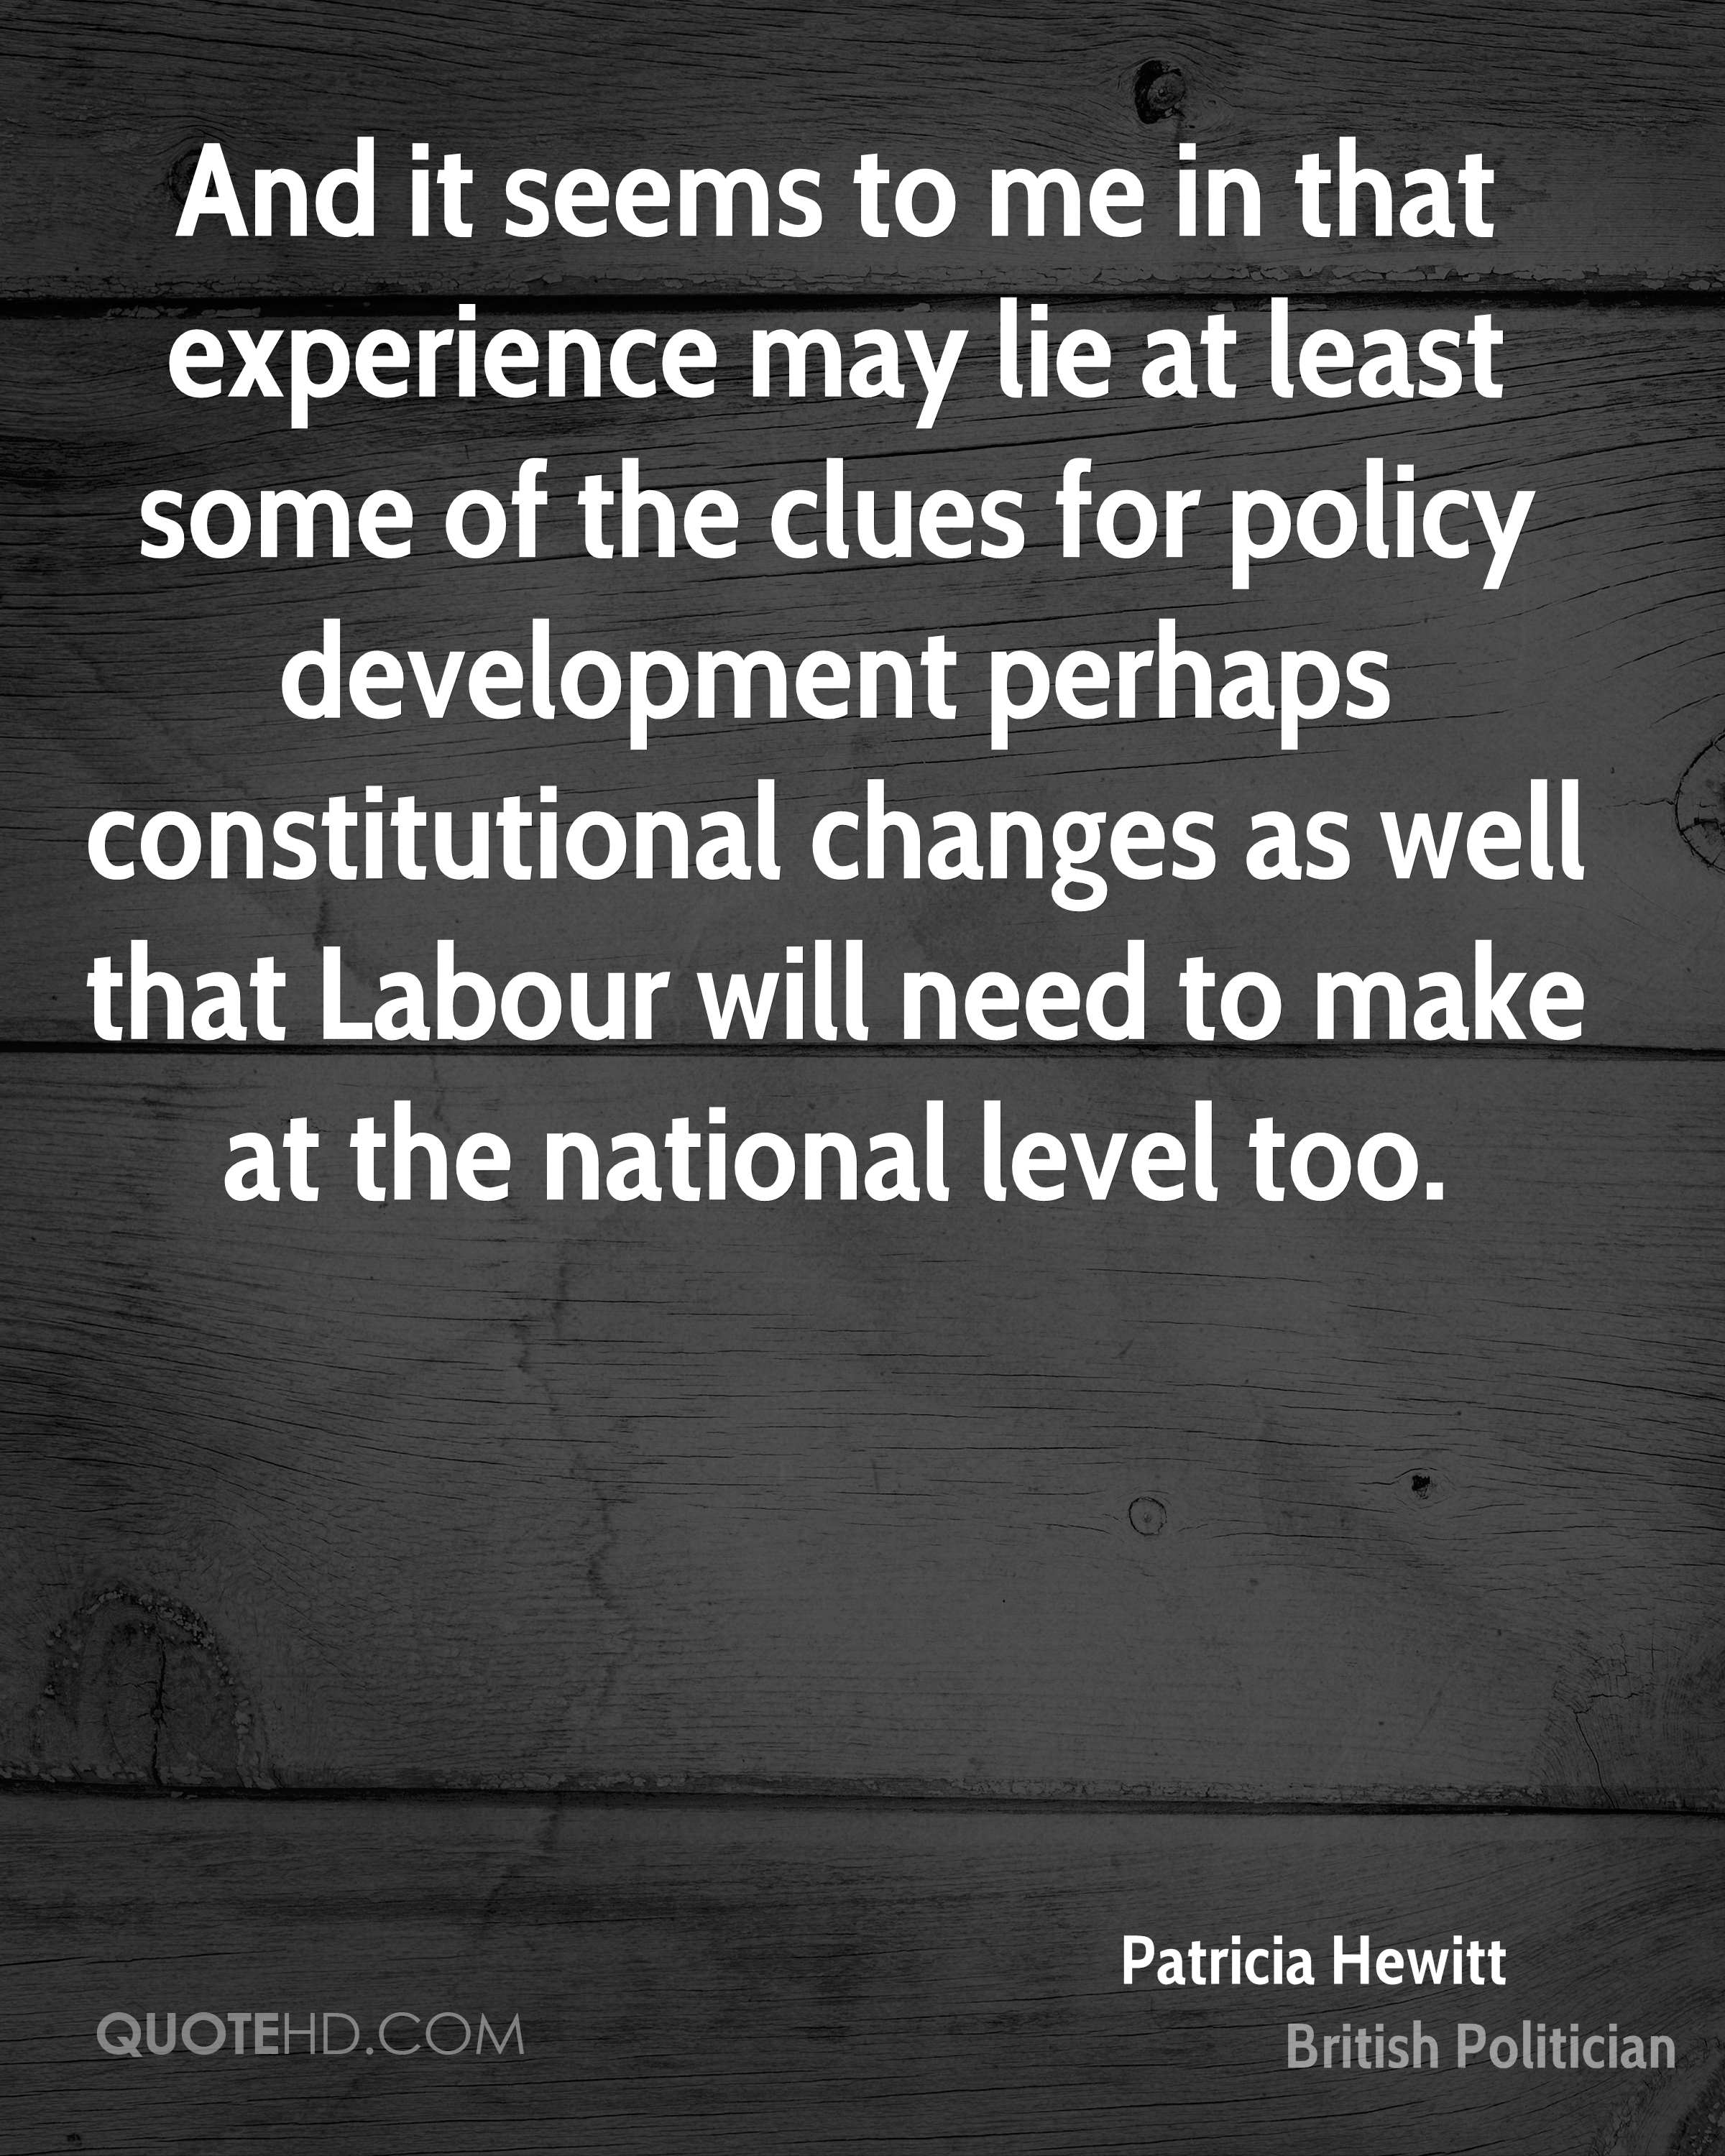 And it seems to me in that experience may lie at least some of the clues for policy development perhaps constitutional changes as well that Labour will need to make at the national level too.